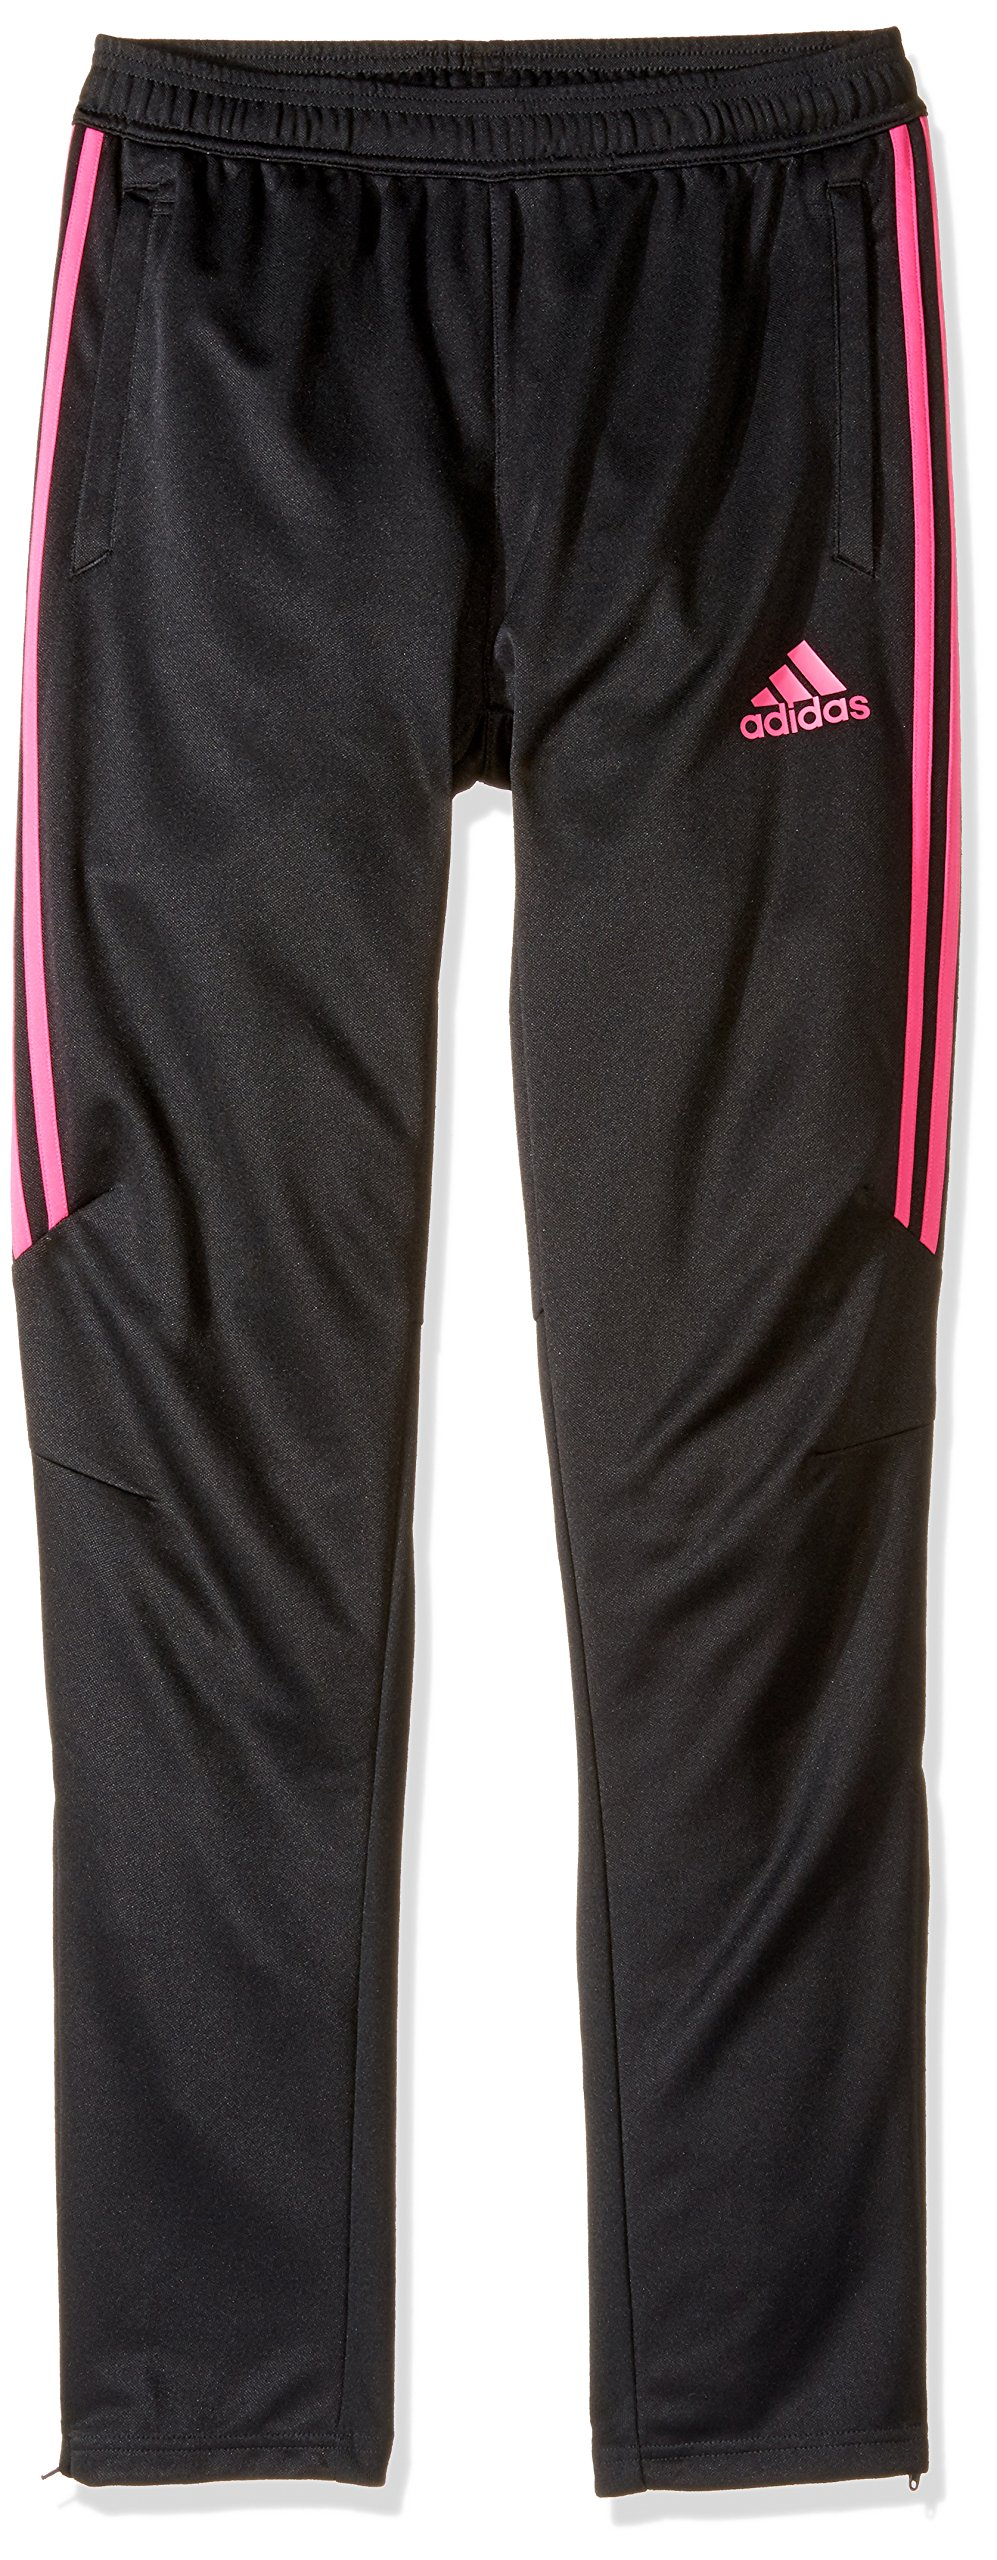 adidas Youth Soccer Tiro 17 Pants, XX-Small - Black/Shock Pink